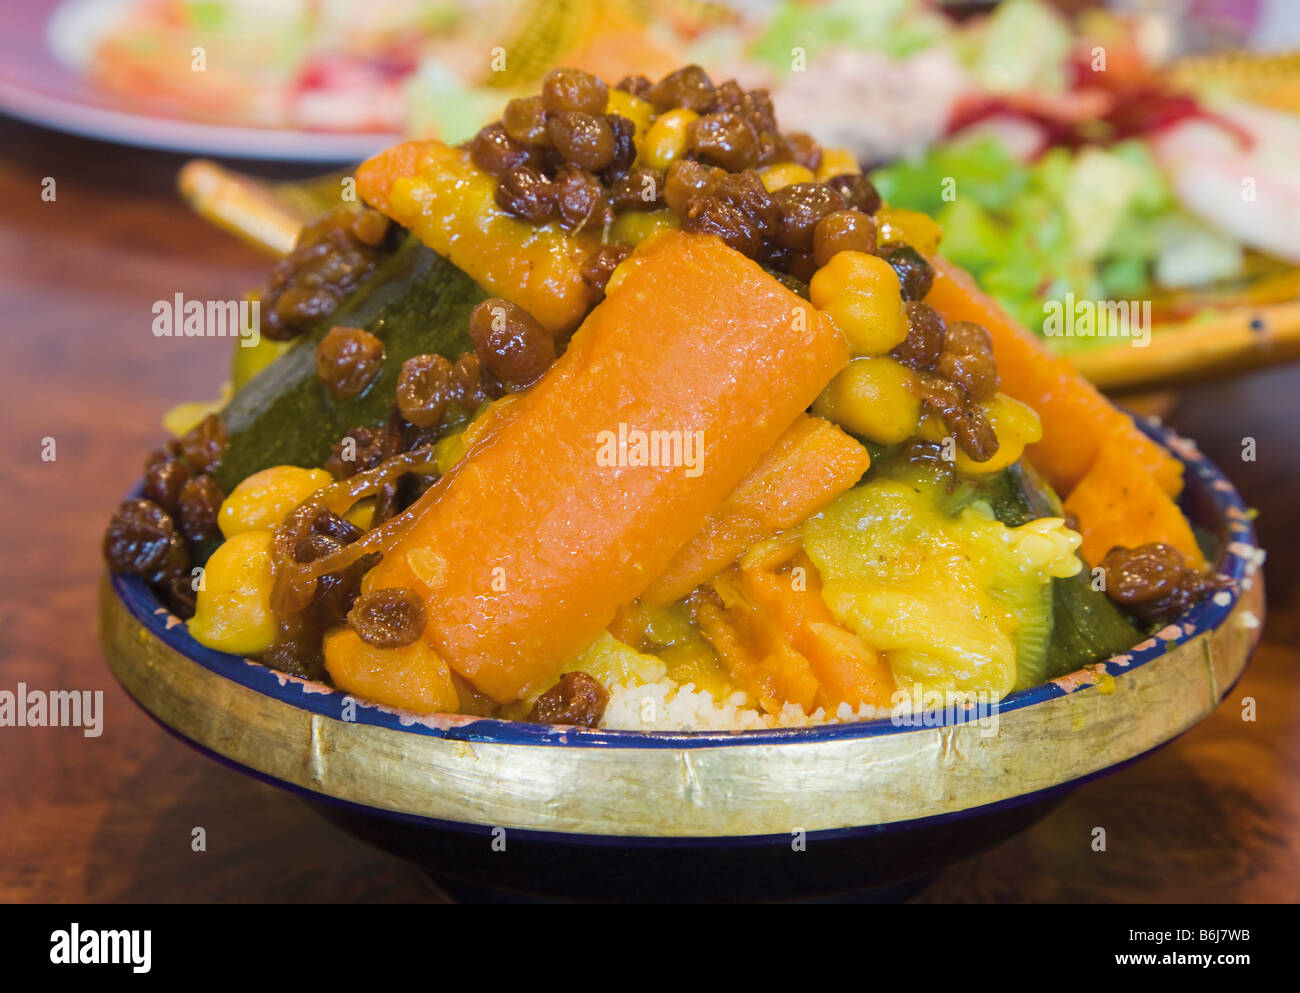 Plate of Morrocan cous cous - Stock Image